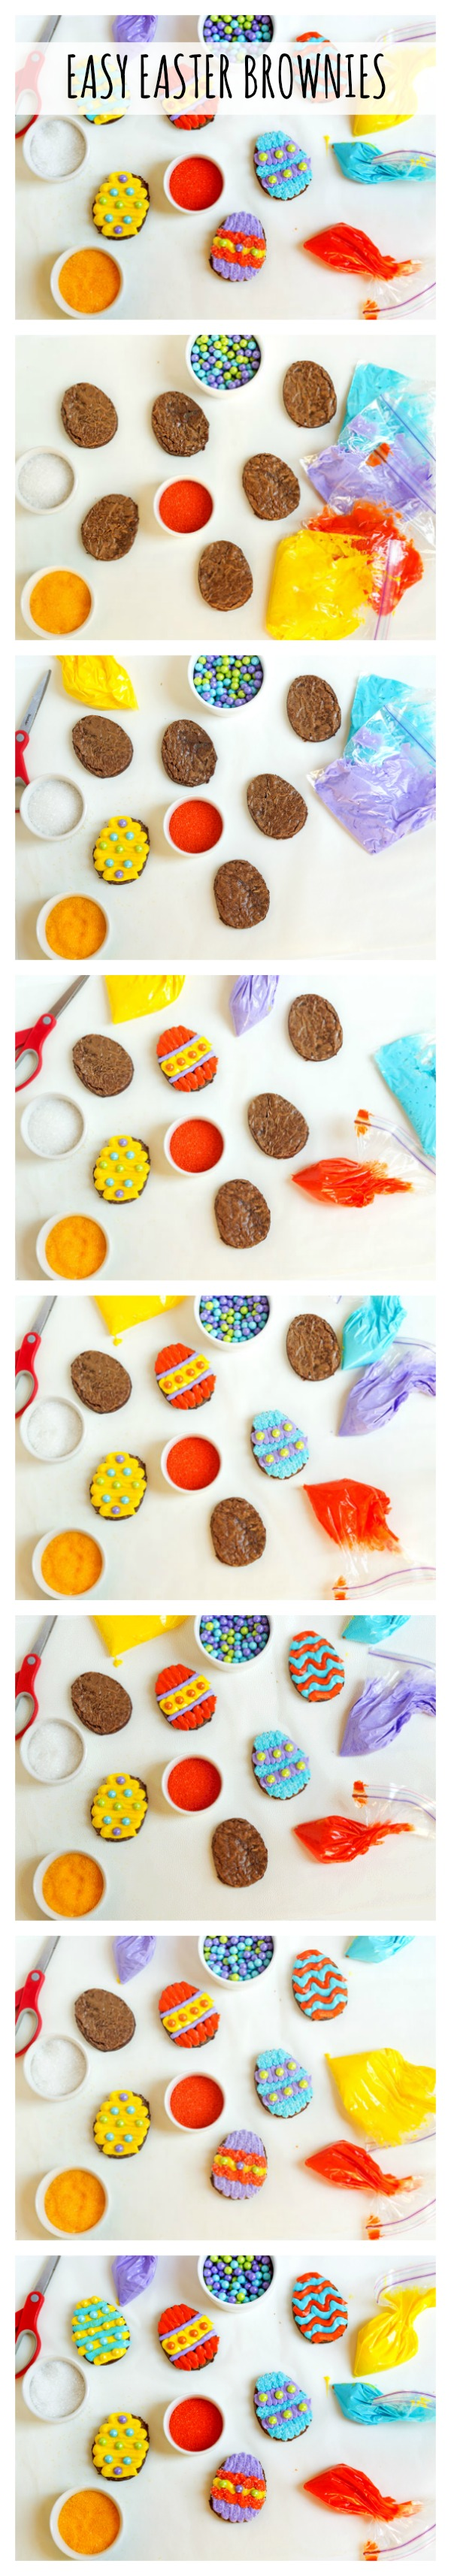 Easy Easter Egg Brownies From a Mix via thebearfootbaker.com